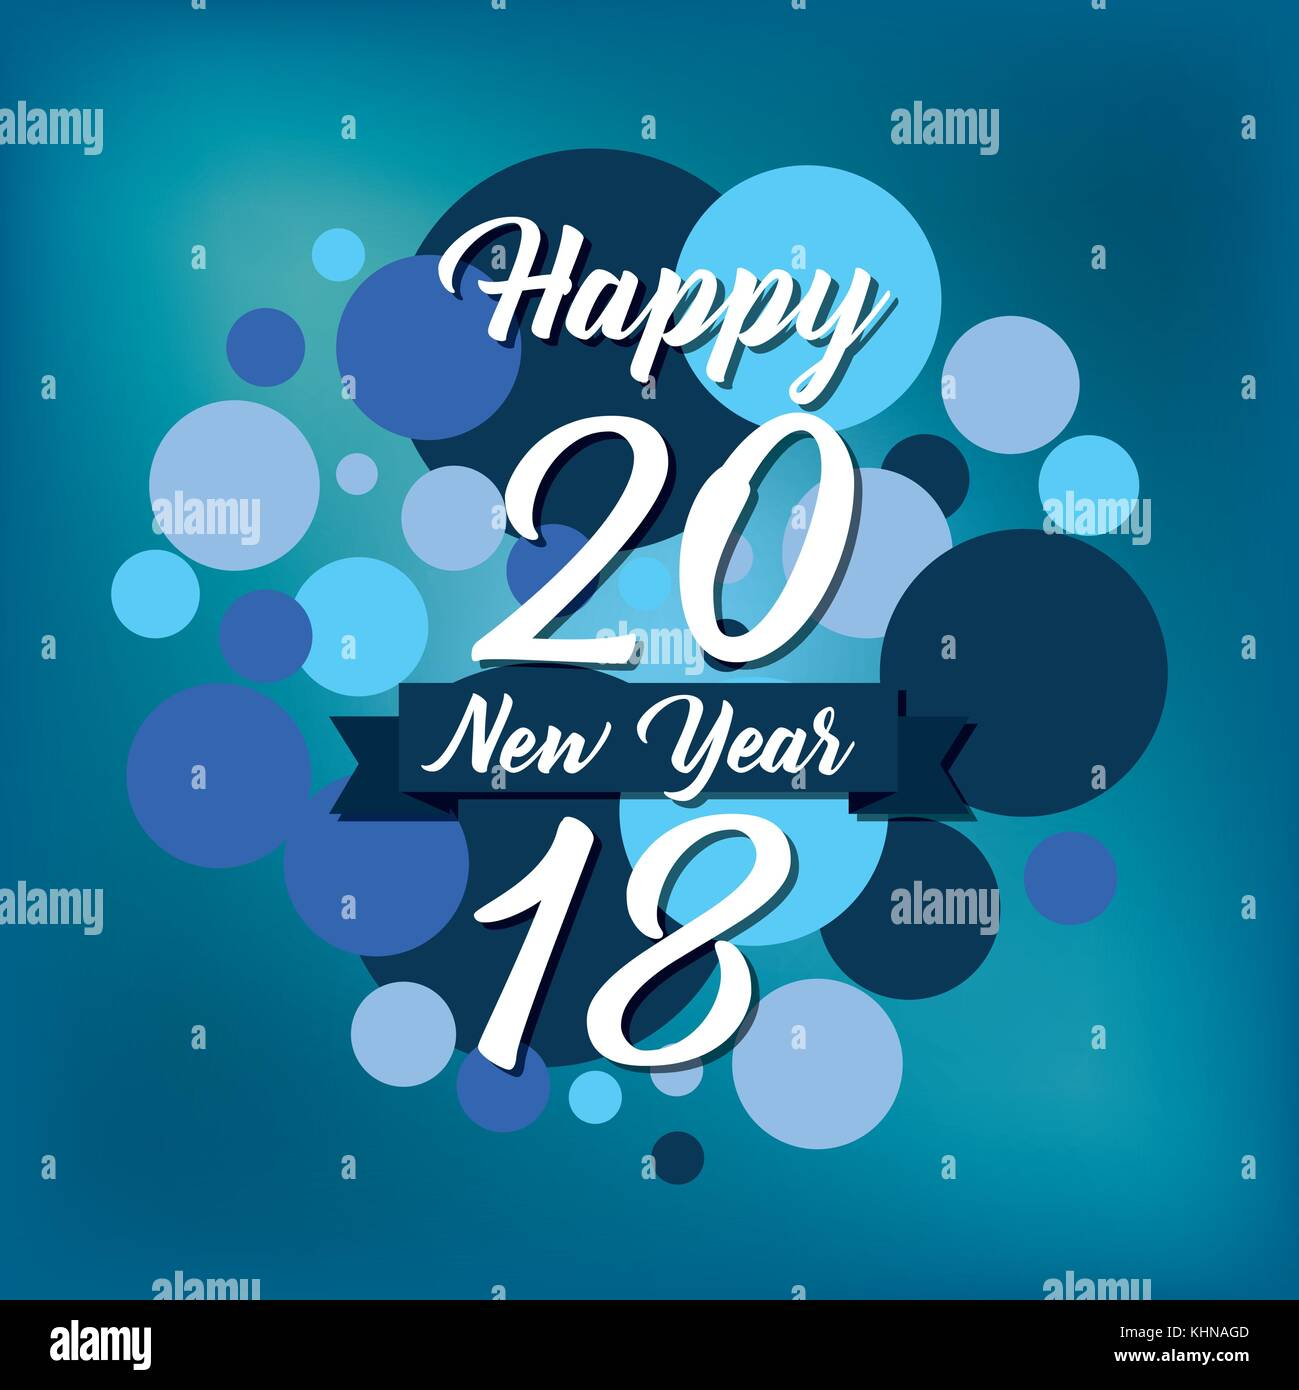 happy new year 2018 card greeting invitation event blue design